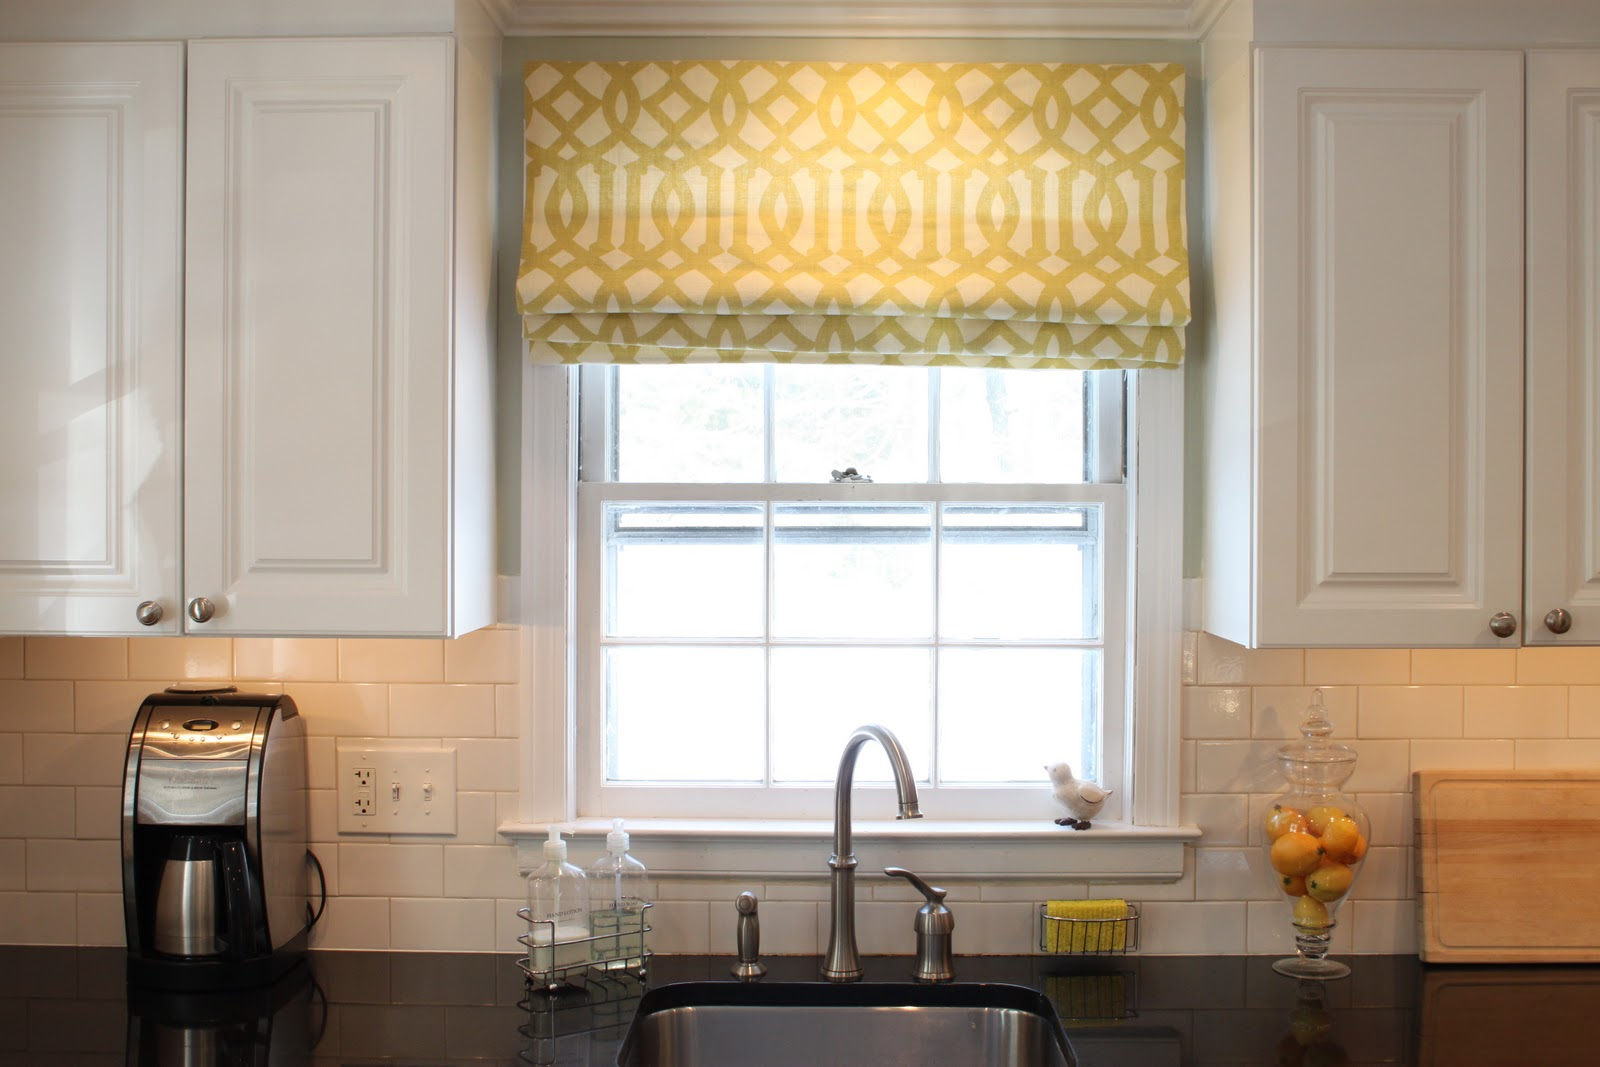 Kitchen Sink Window Treatments Roman Shades